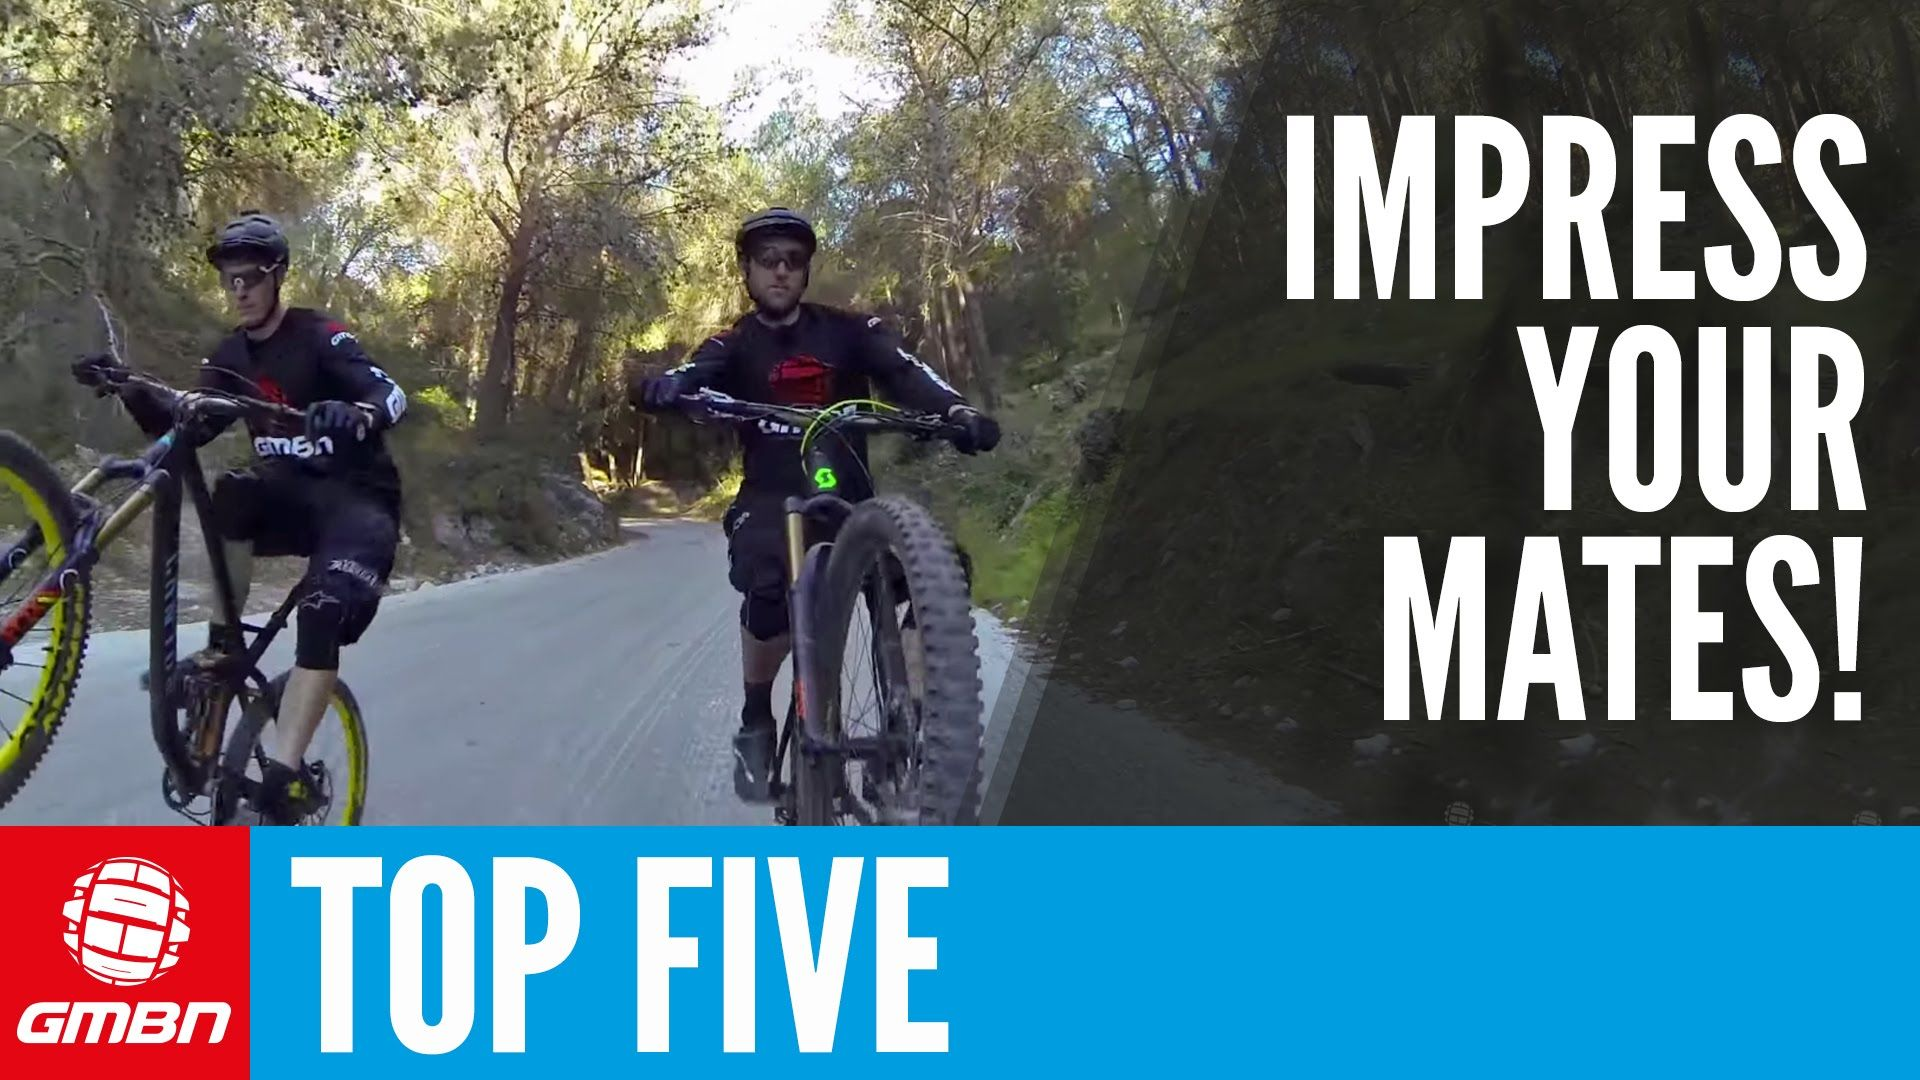 Top Five Ways To Impress Your Mates Mtb Skills Bike Training